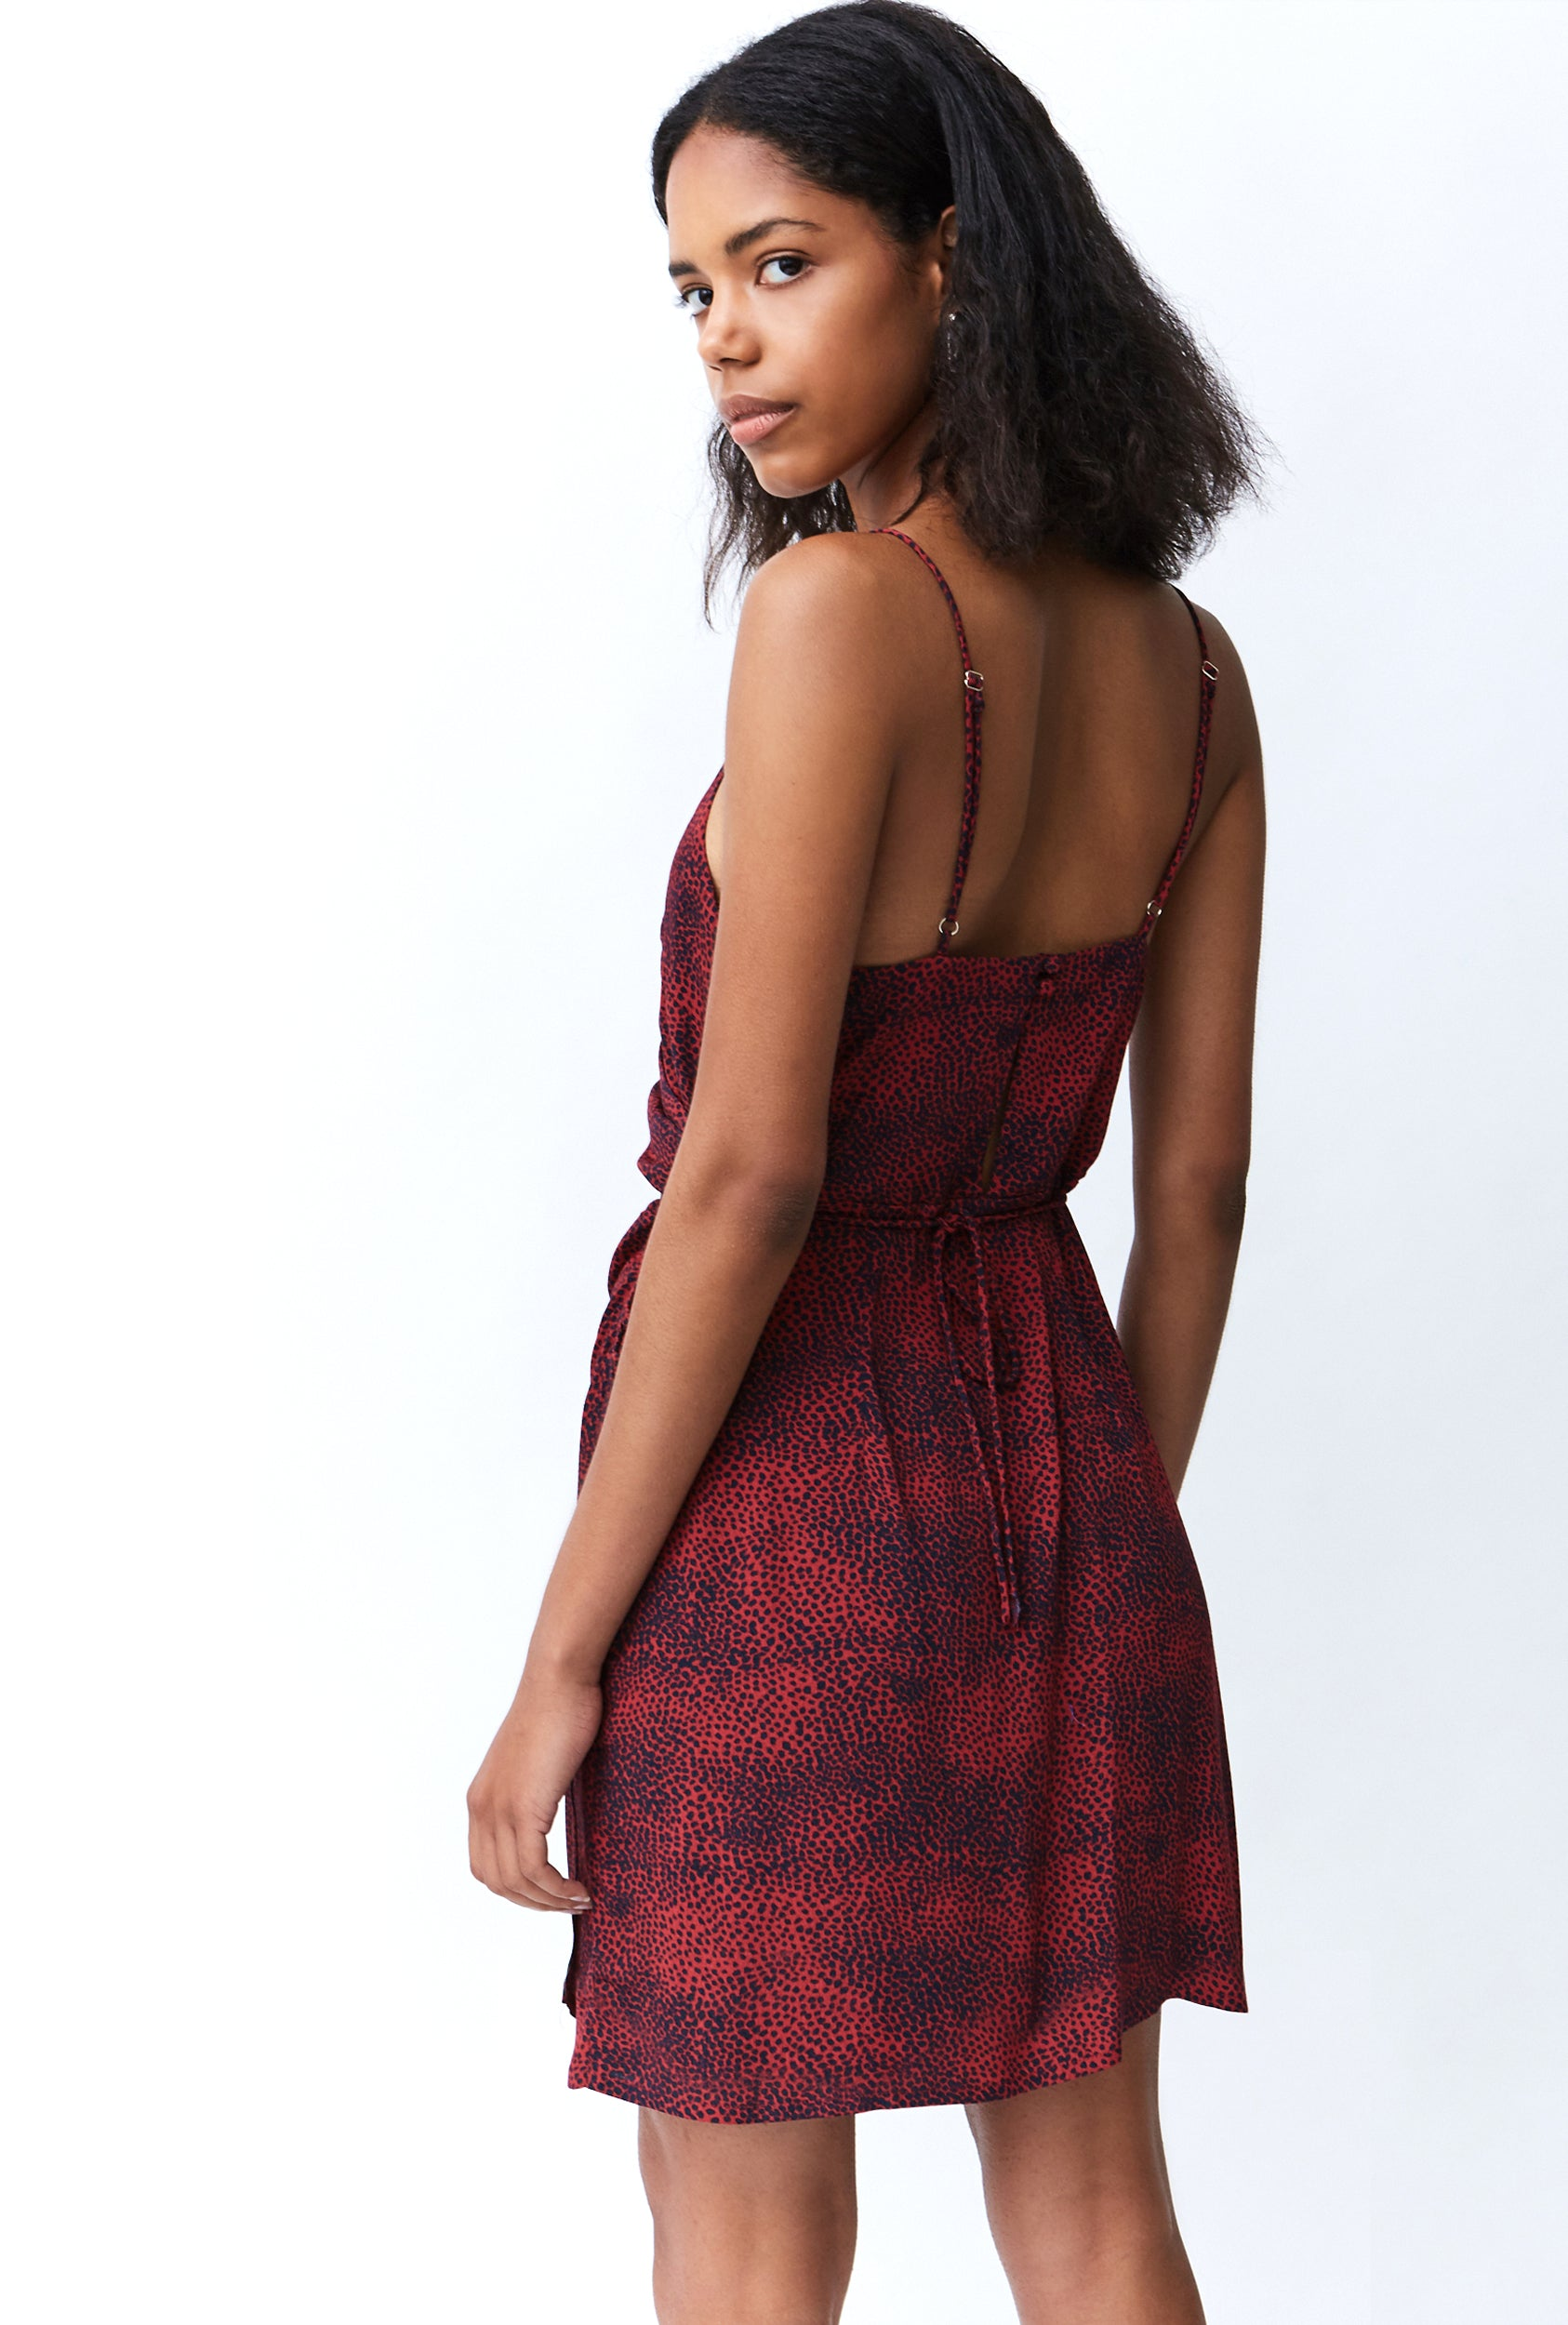 THE HUNTED MINI CROSS DRESS | CHERRY ANIMAL